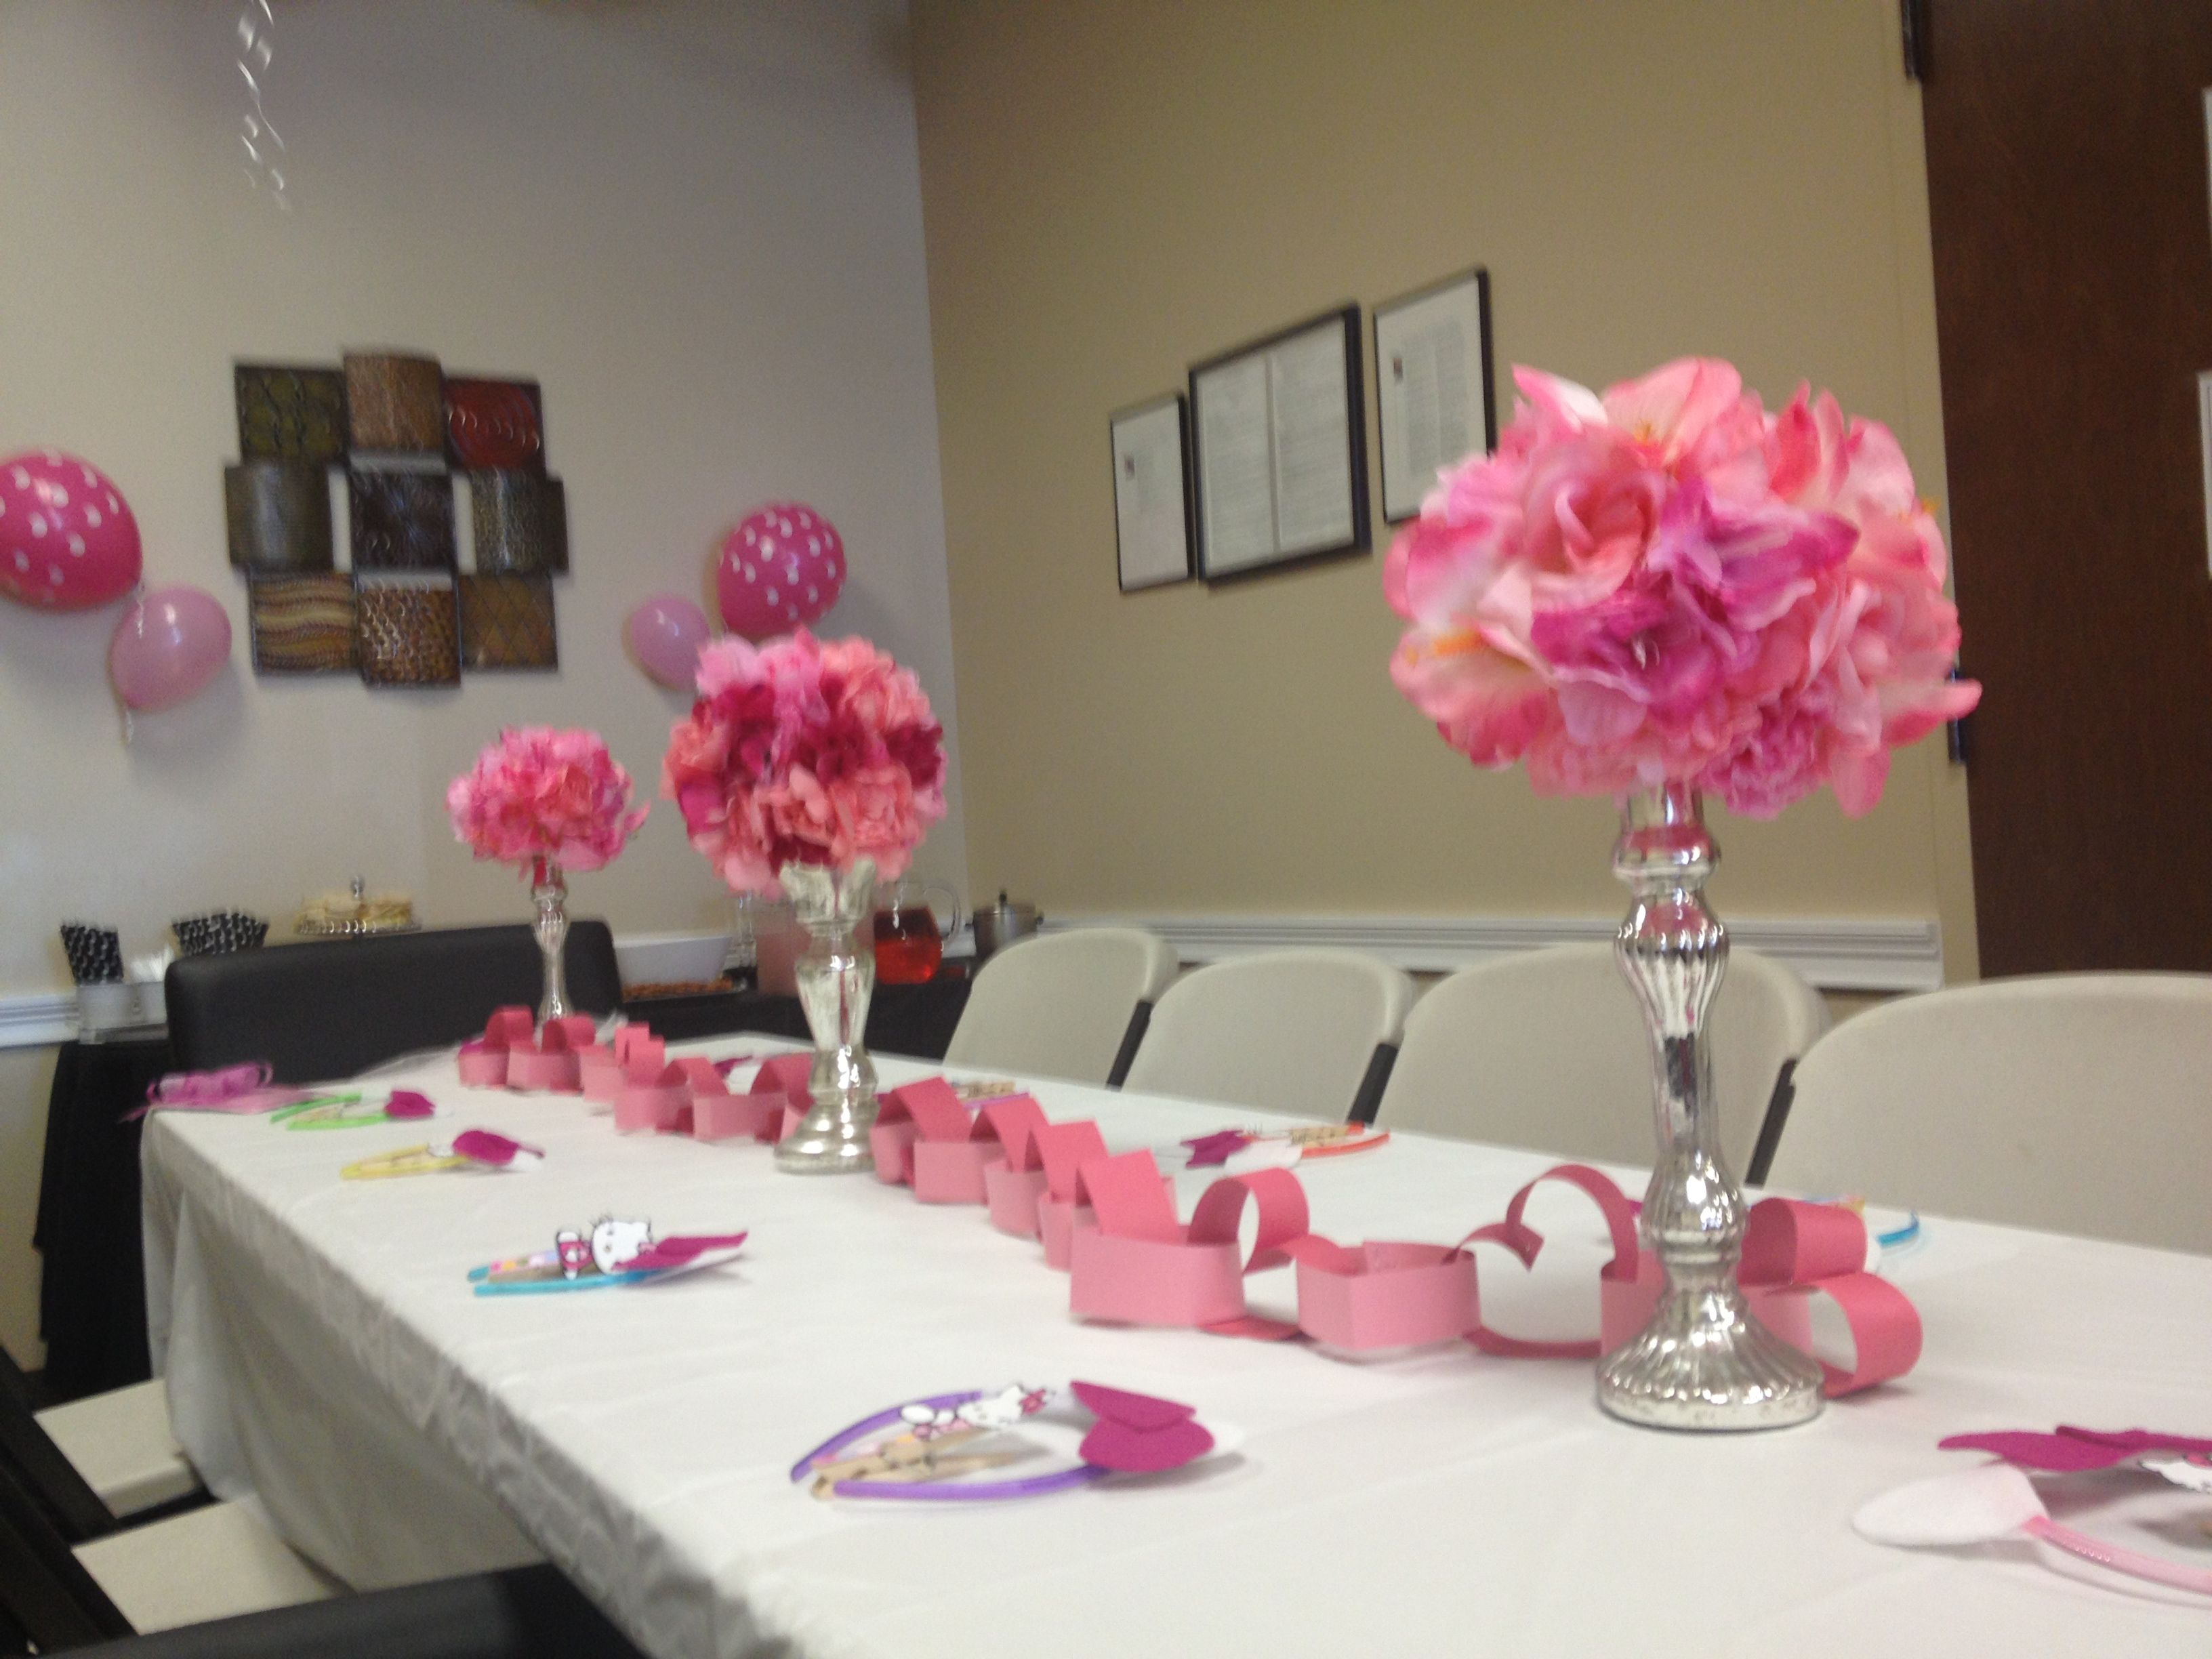 Simple table decorations - Super Simple Table Decor Stick Fake Flowers From The Dollar Tree Into Styrofoam Balls And